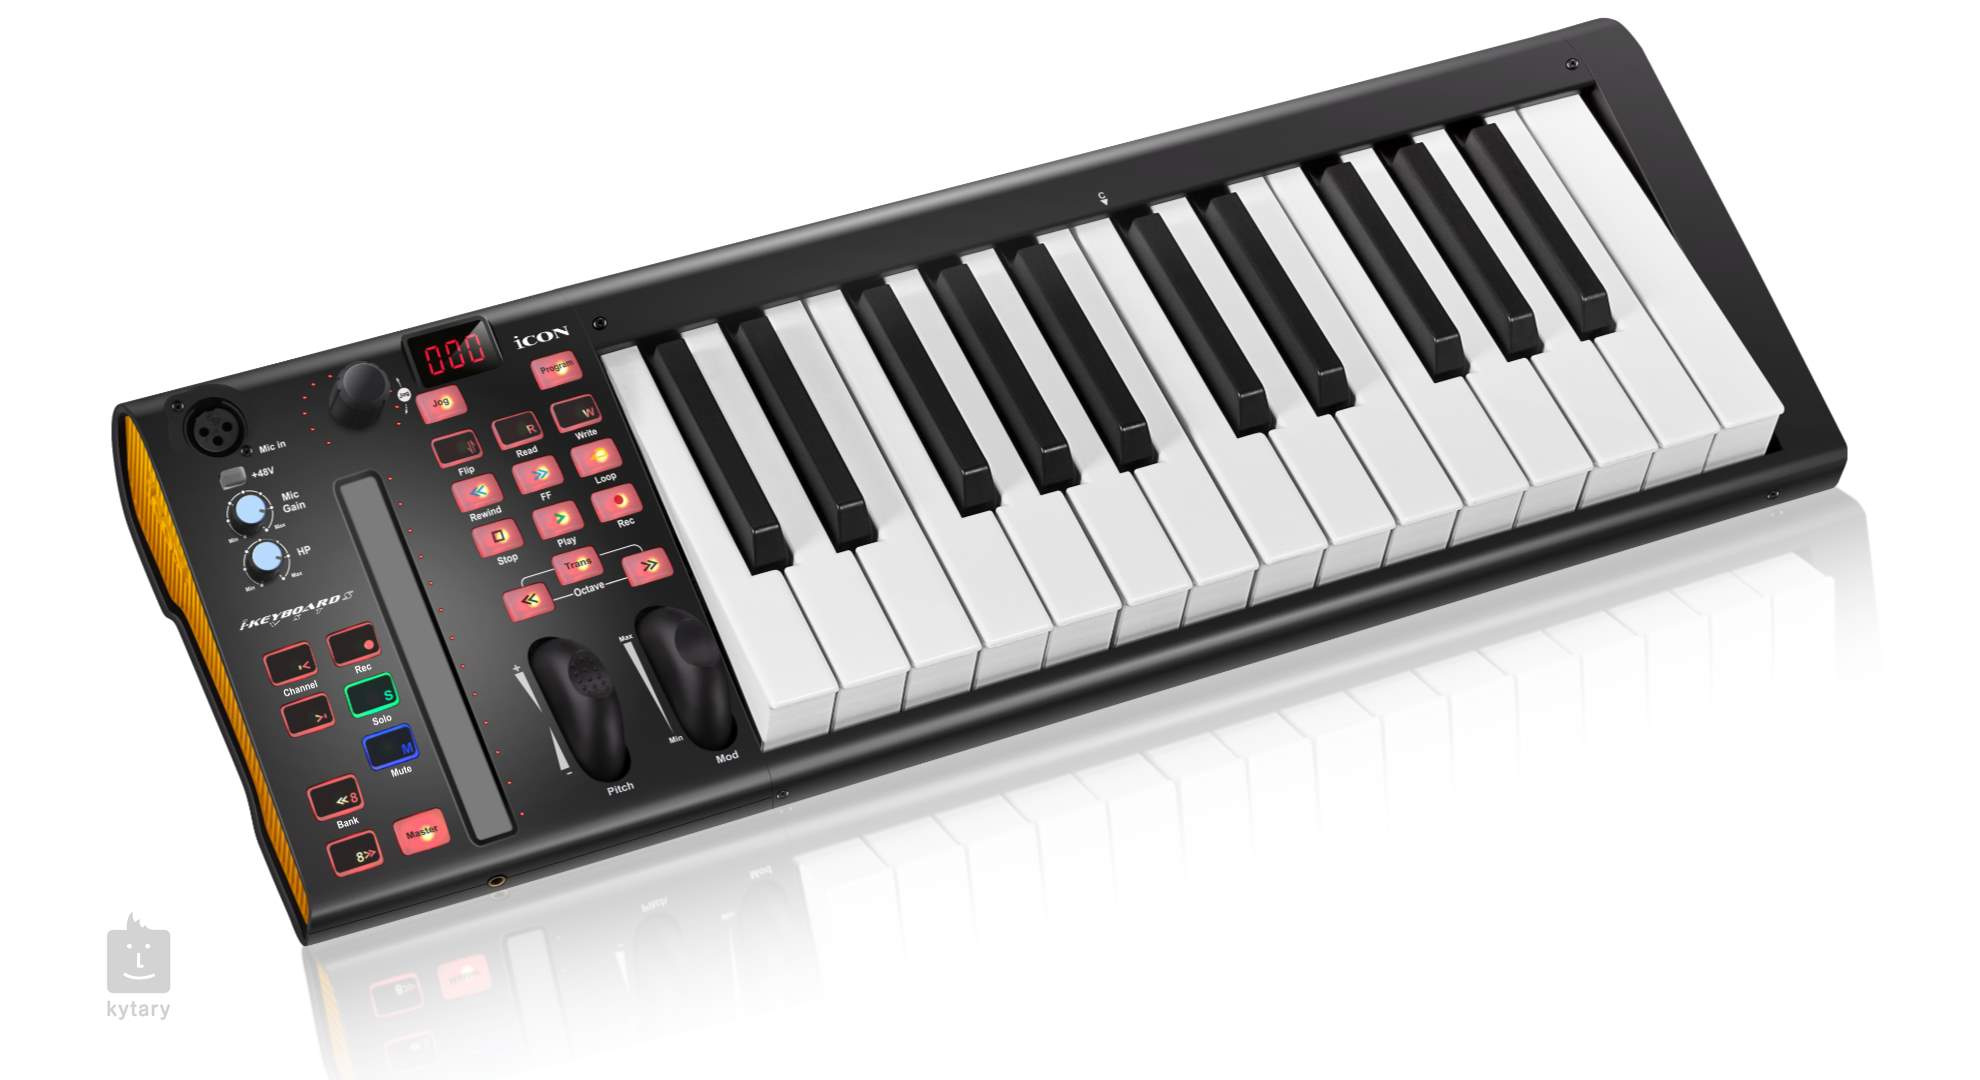 ICON iKeyboard 3S VST